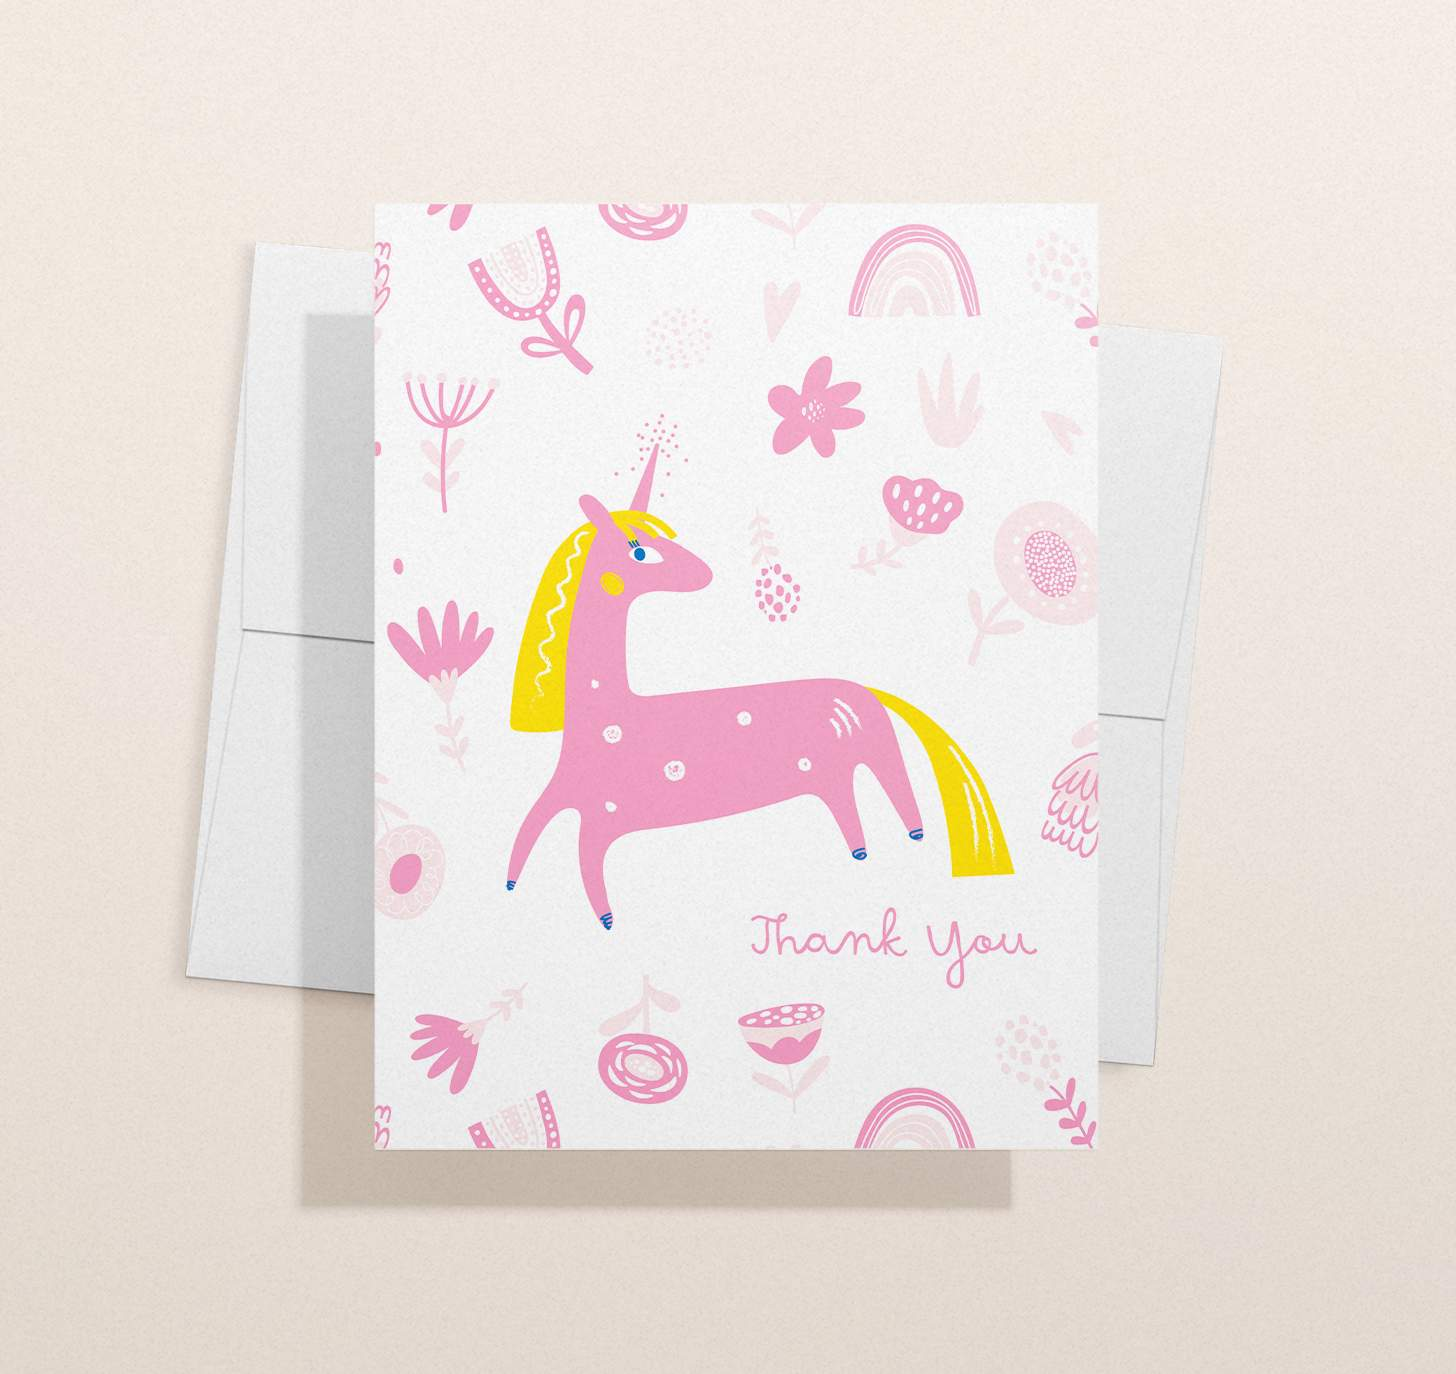 Colorful pink unicorn design with envelope